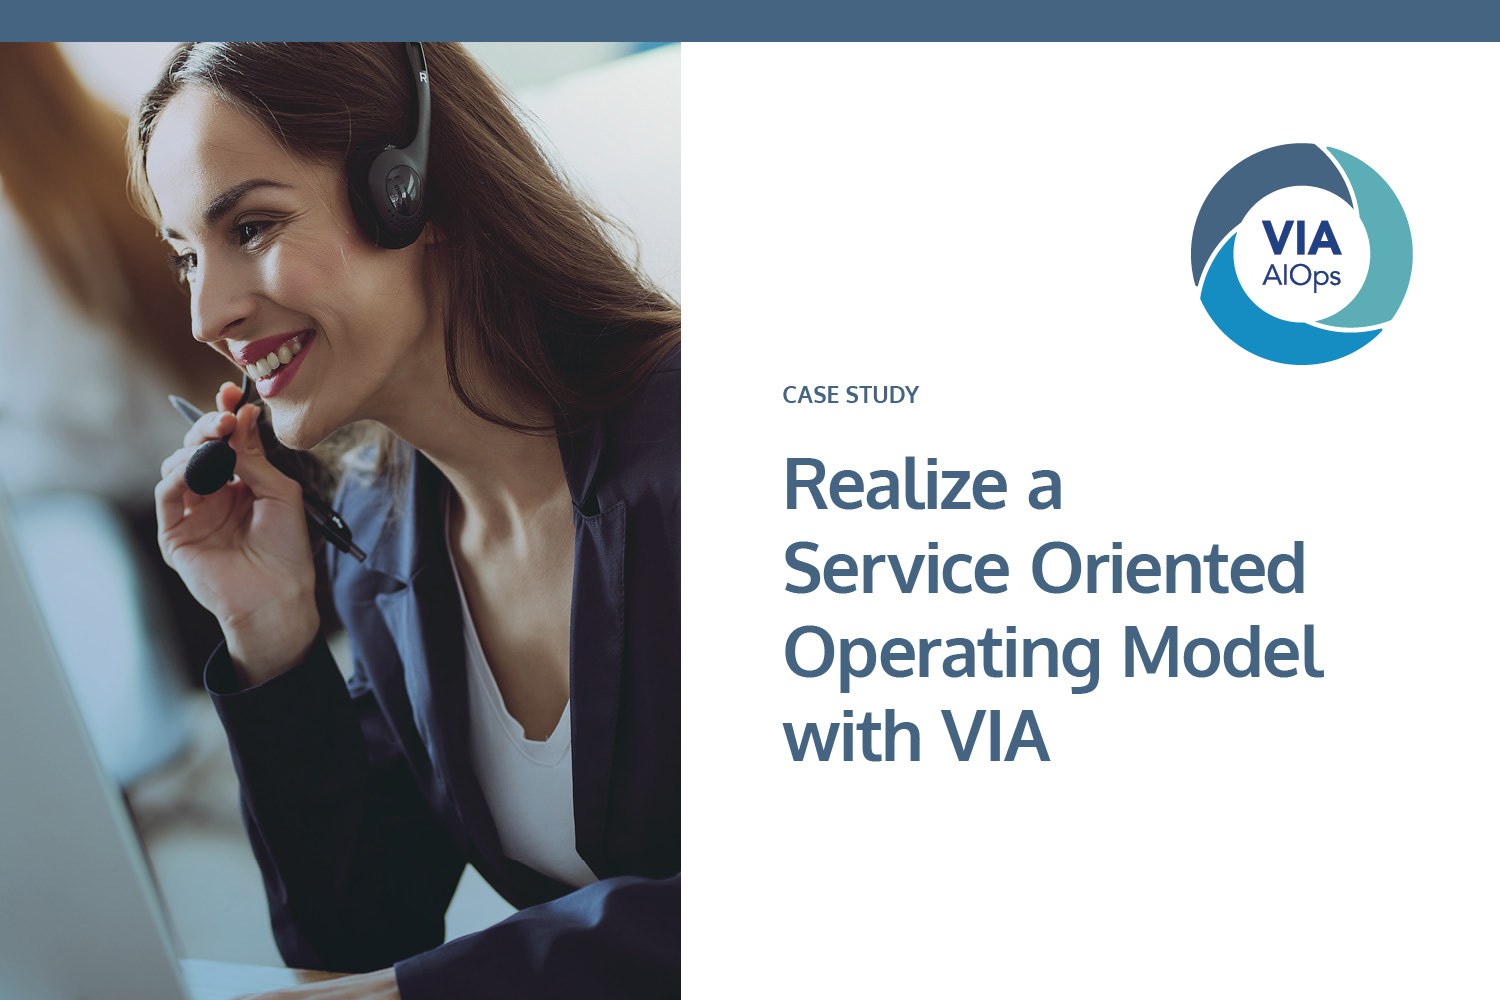 Download the Case Study: Realize a Service Oriented Operating Model With VIA